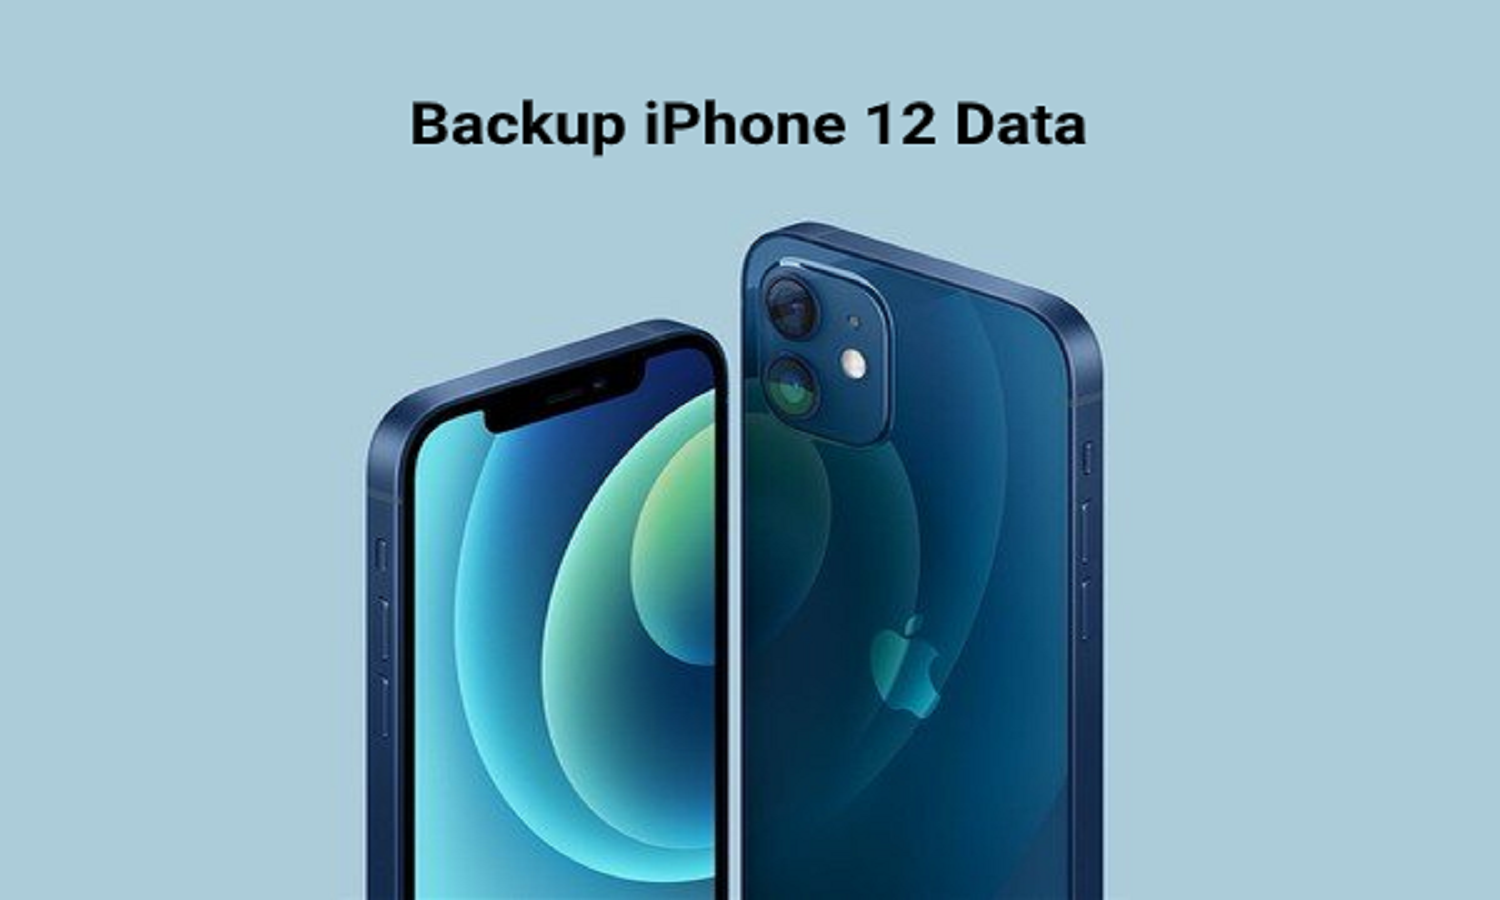 How to Backup iPhone 12 Data (4 Free Methods)